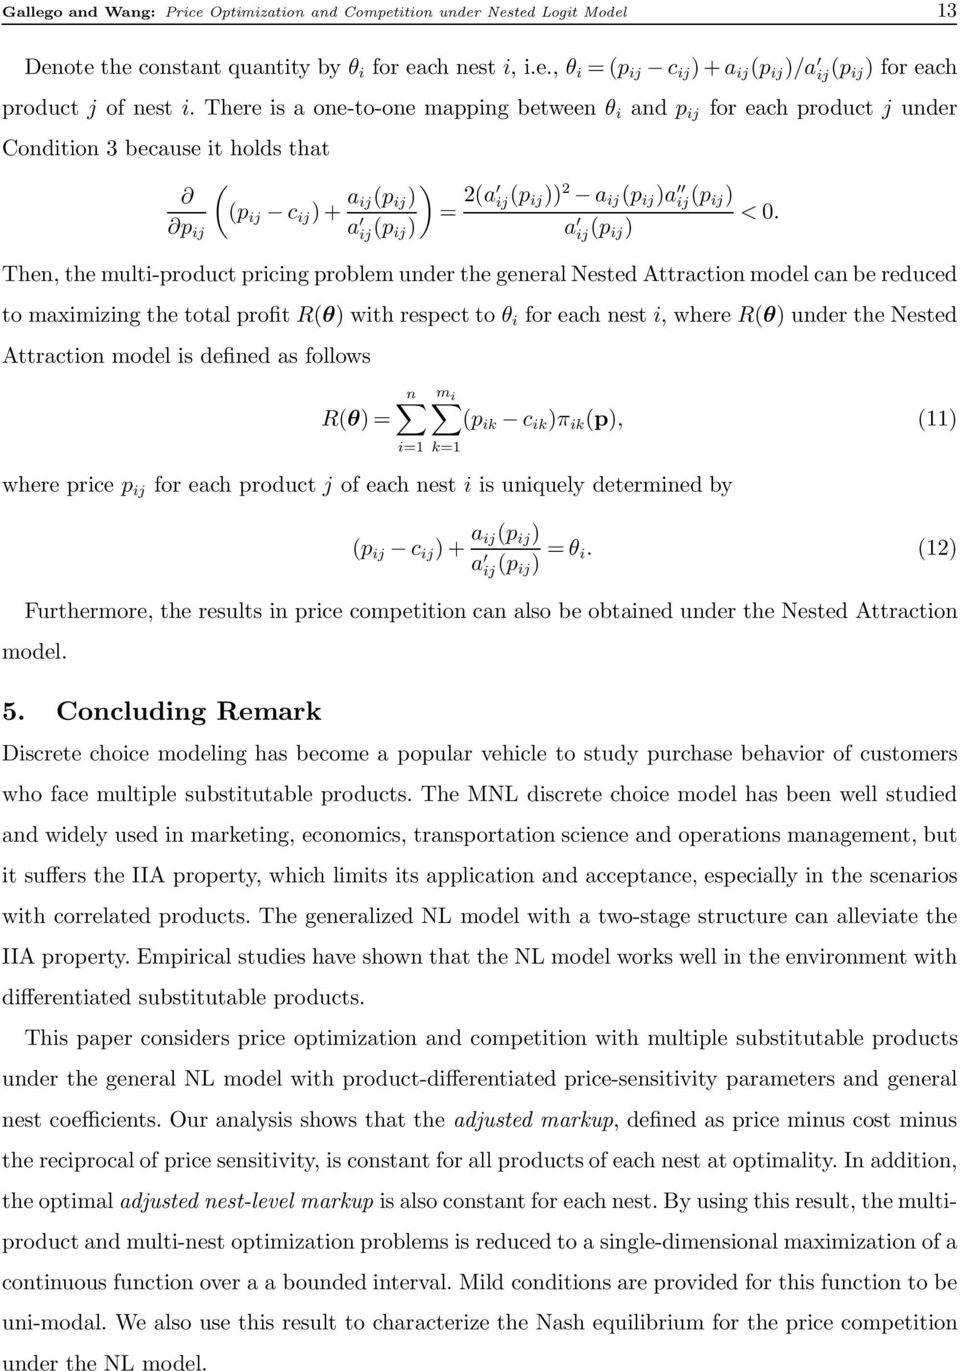 a jp j a jp j p j Then, the mult-product prcng problem under the general Nested Attracton model can be reduced to maxmzng the total proft Rθ wth respect to θ for each nest, where Rθ under the Nested